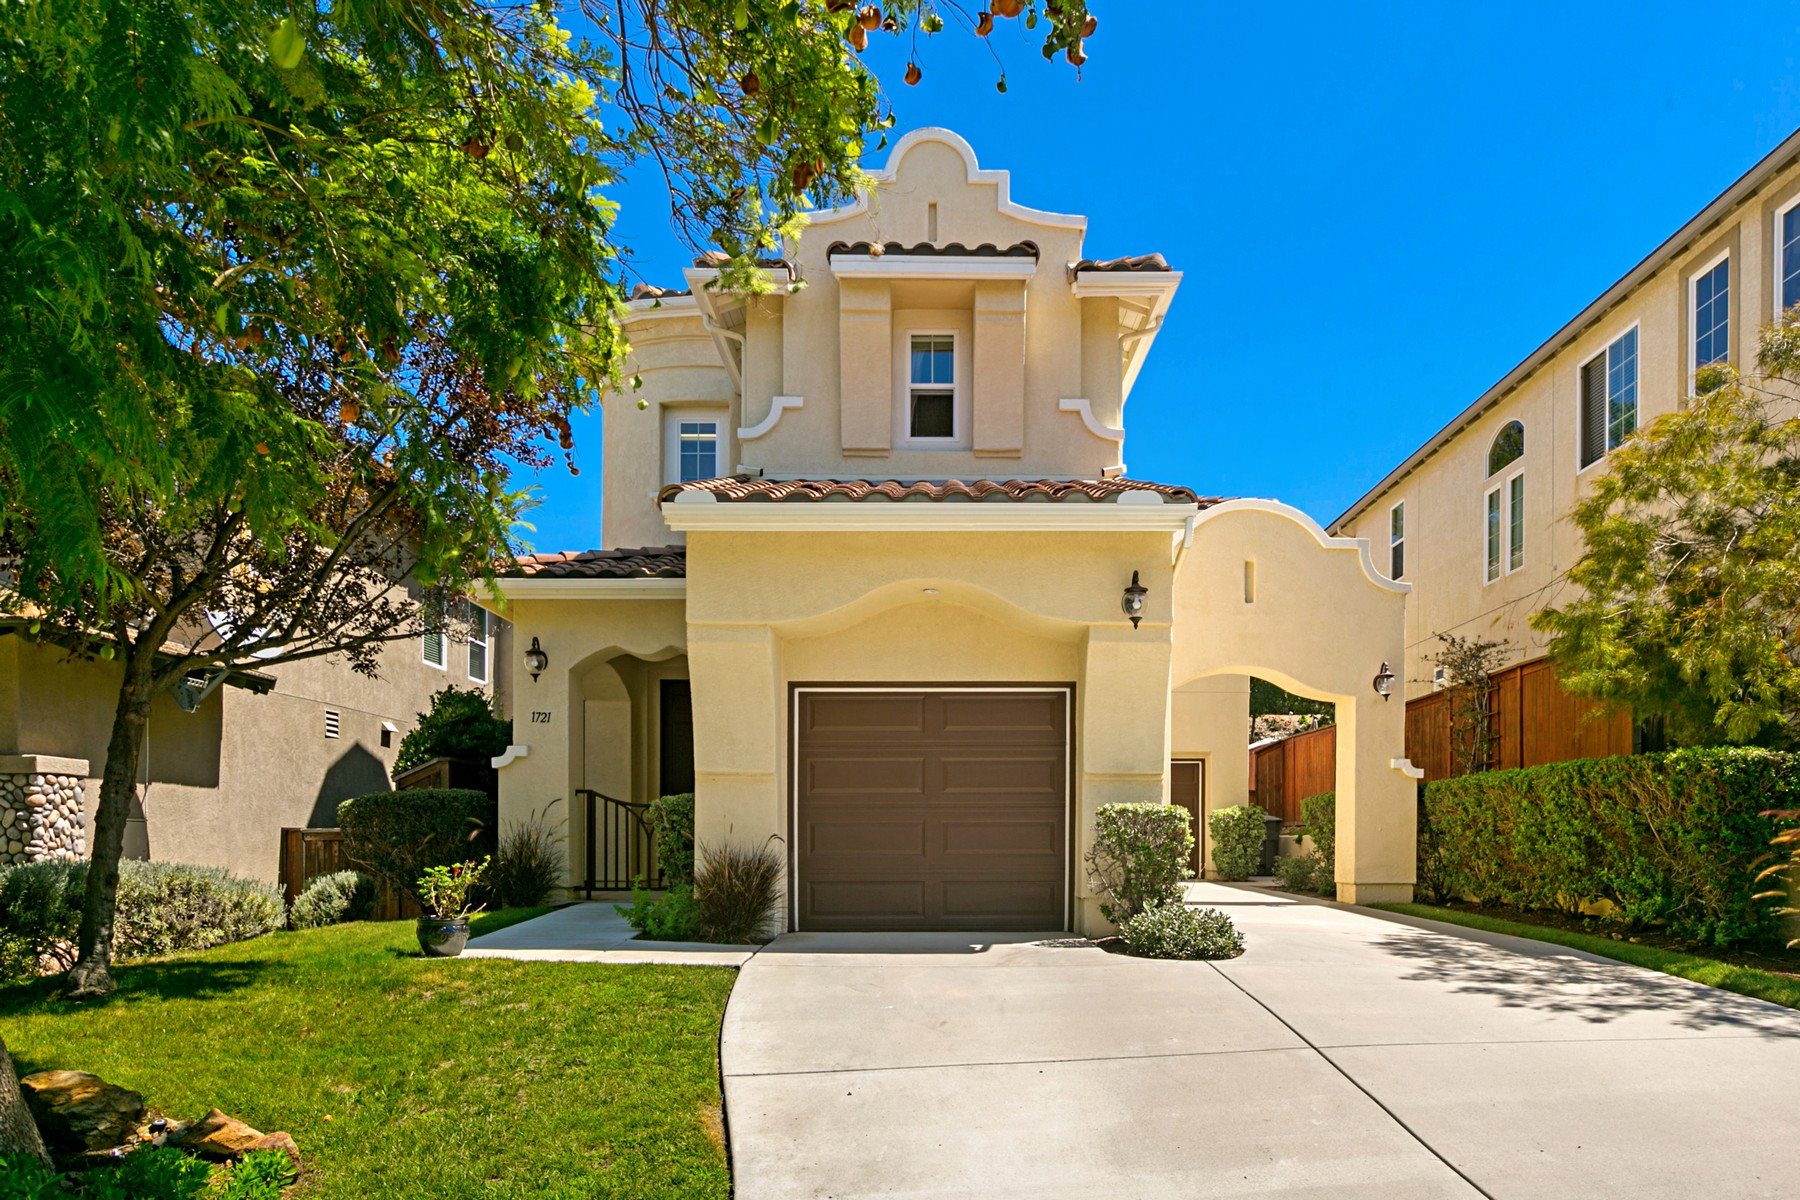 Single Family Homes for Sale at 1721 Kenwood Pl San Marcos, California 92078 United States